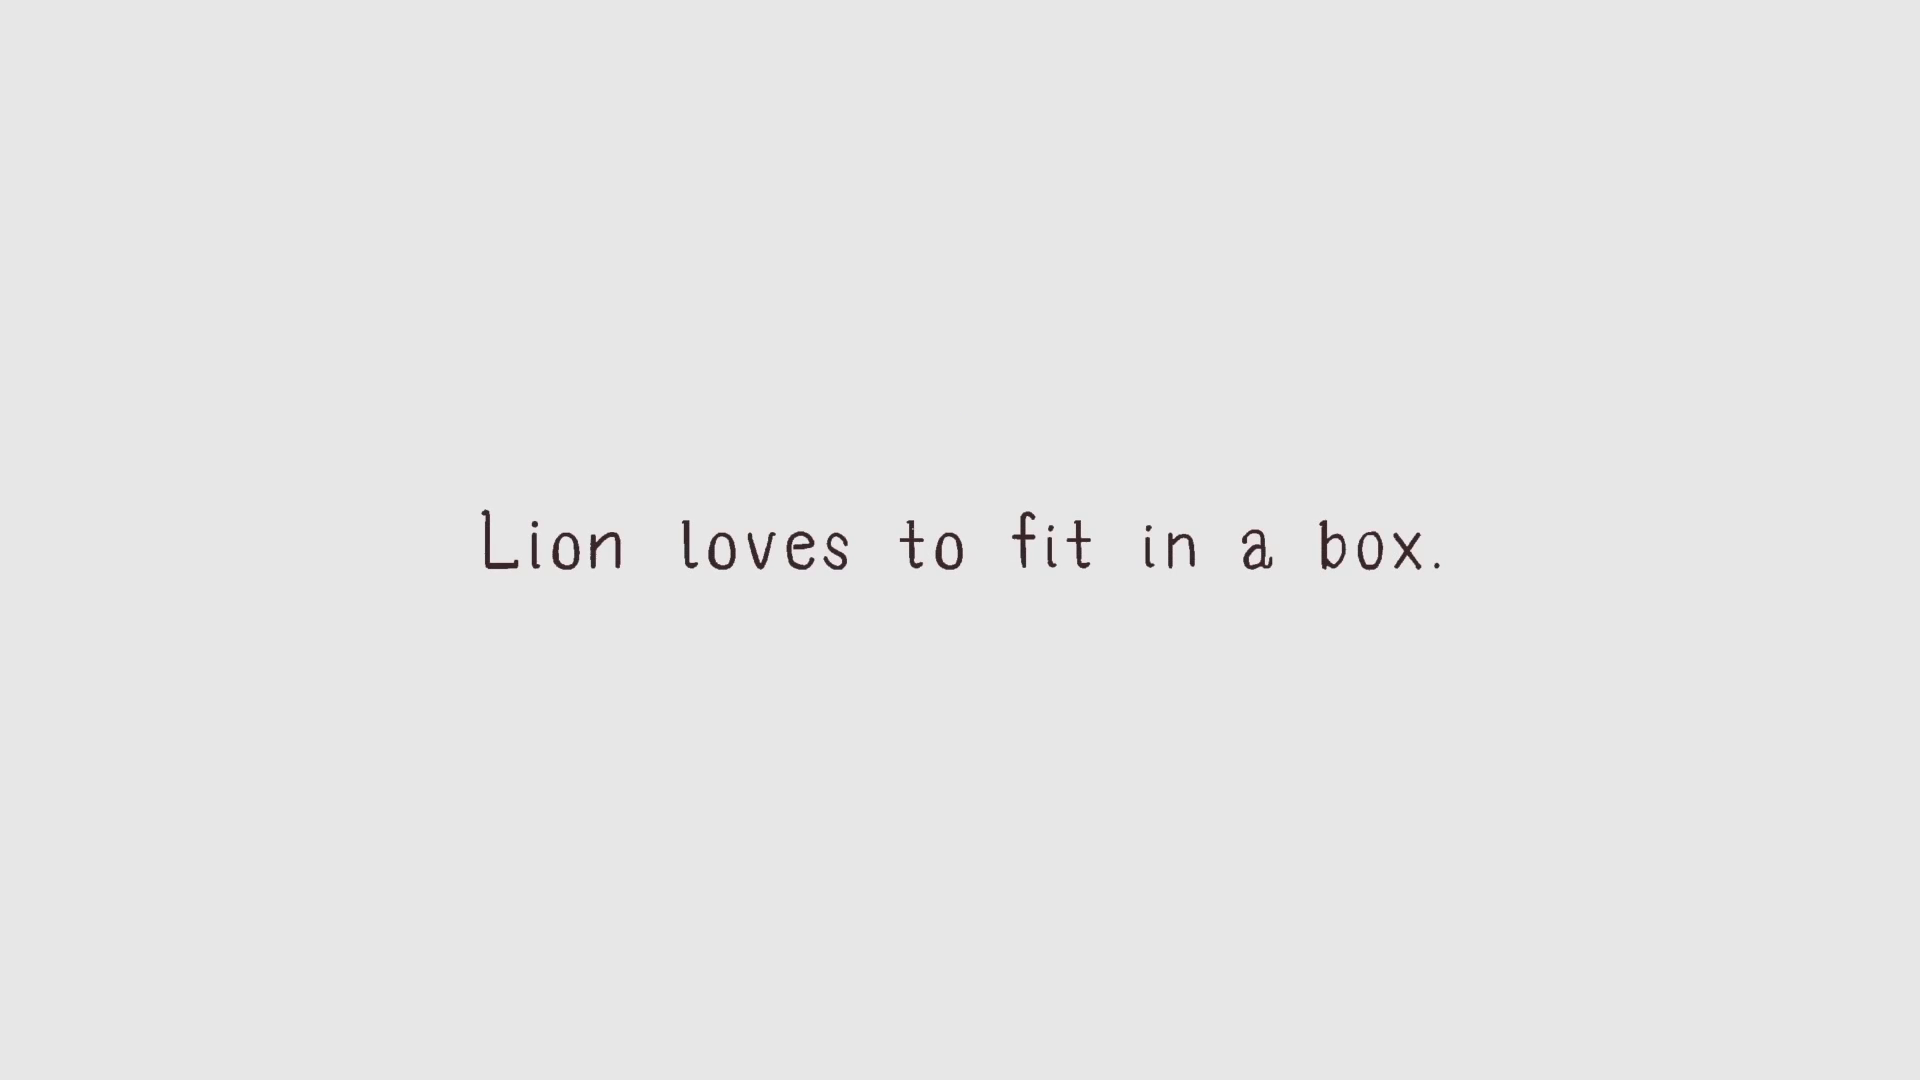 Lion Loves to Fit in a Box